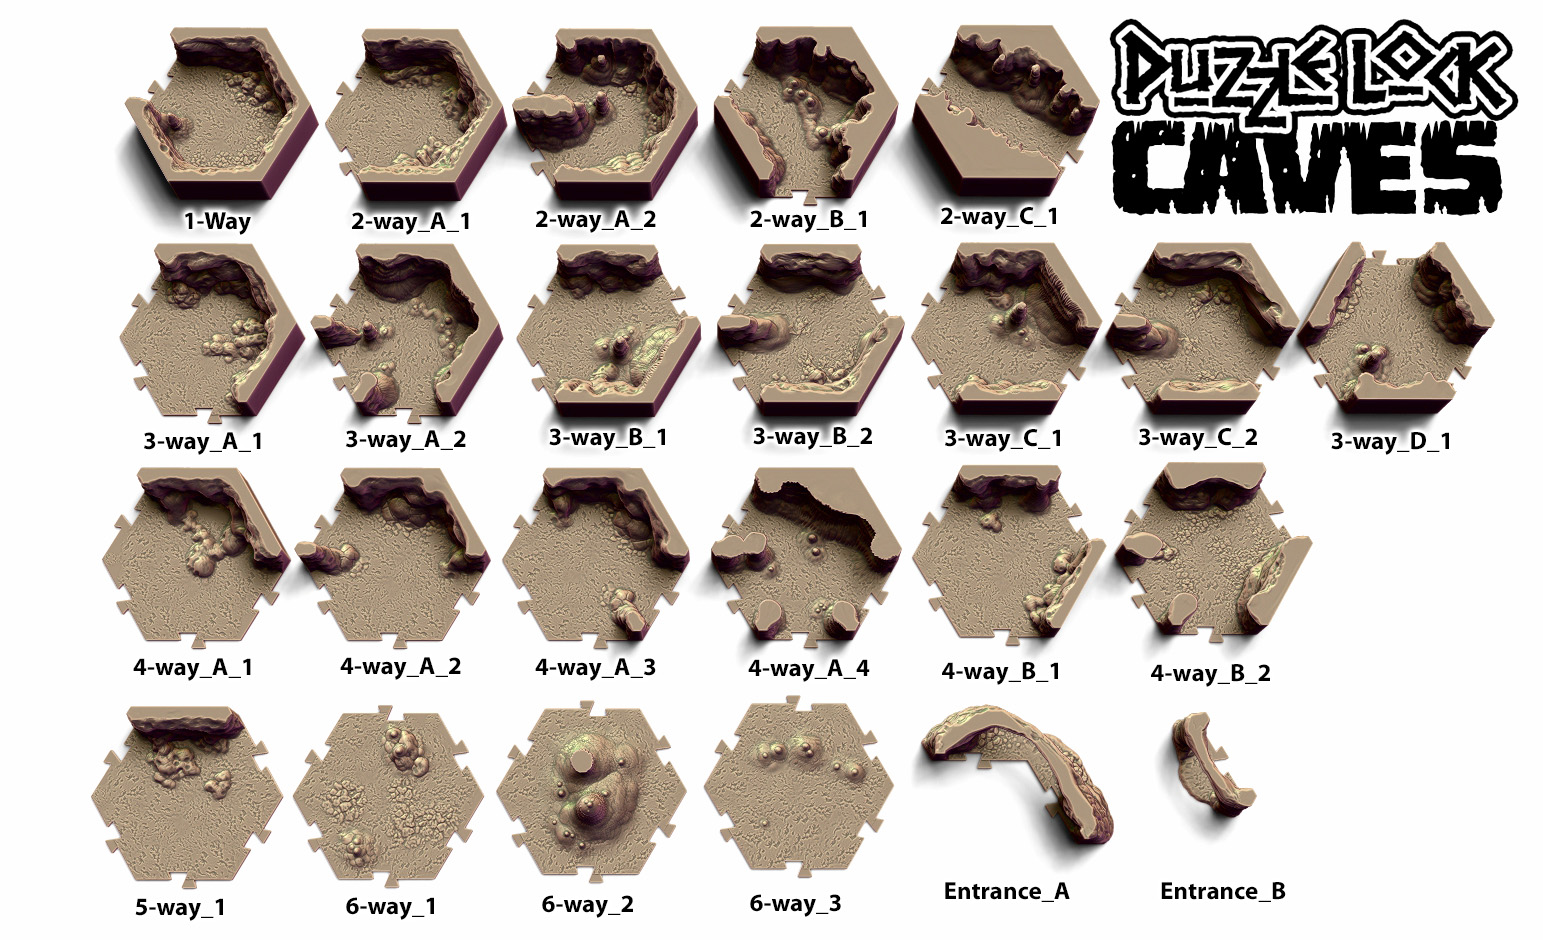 Puzzlelock_Caves_Chart